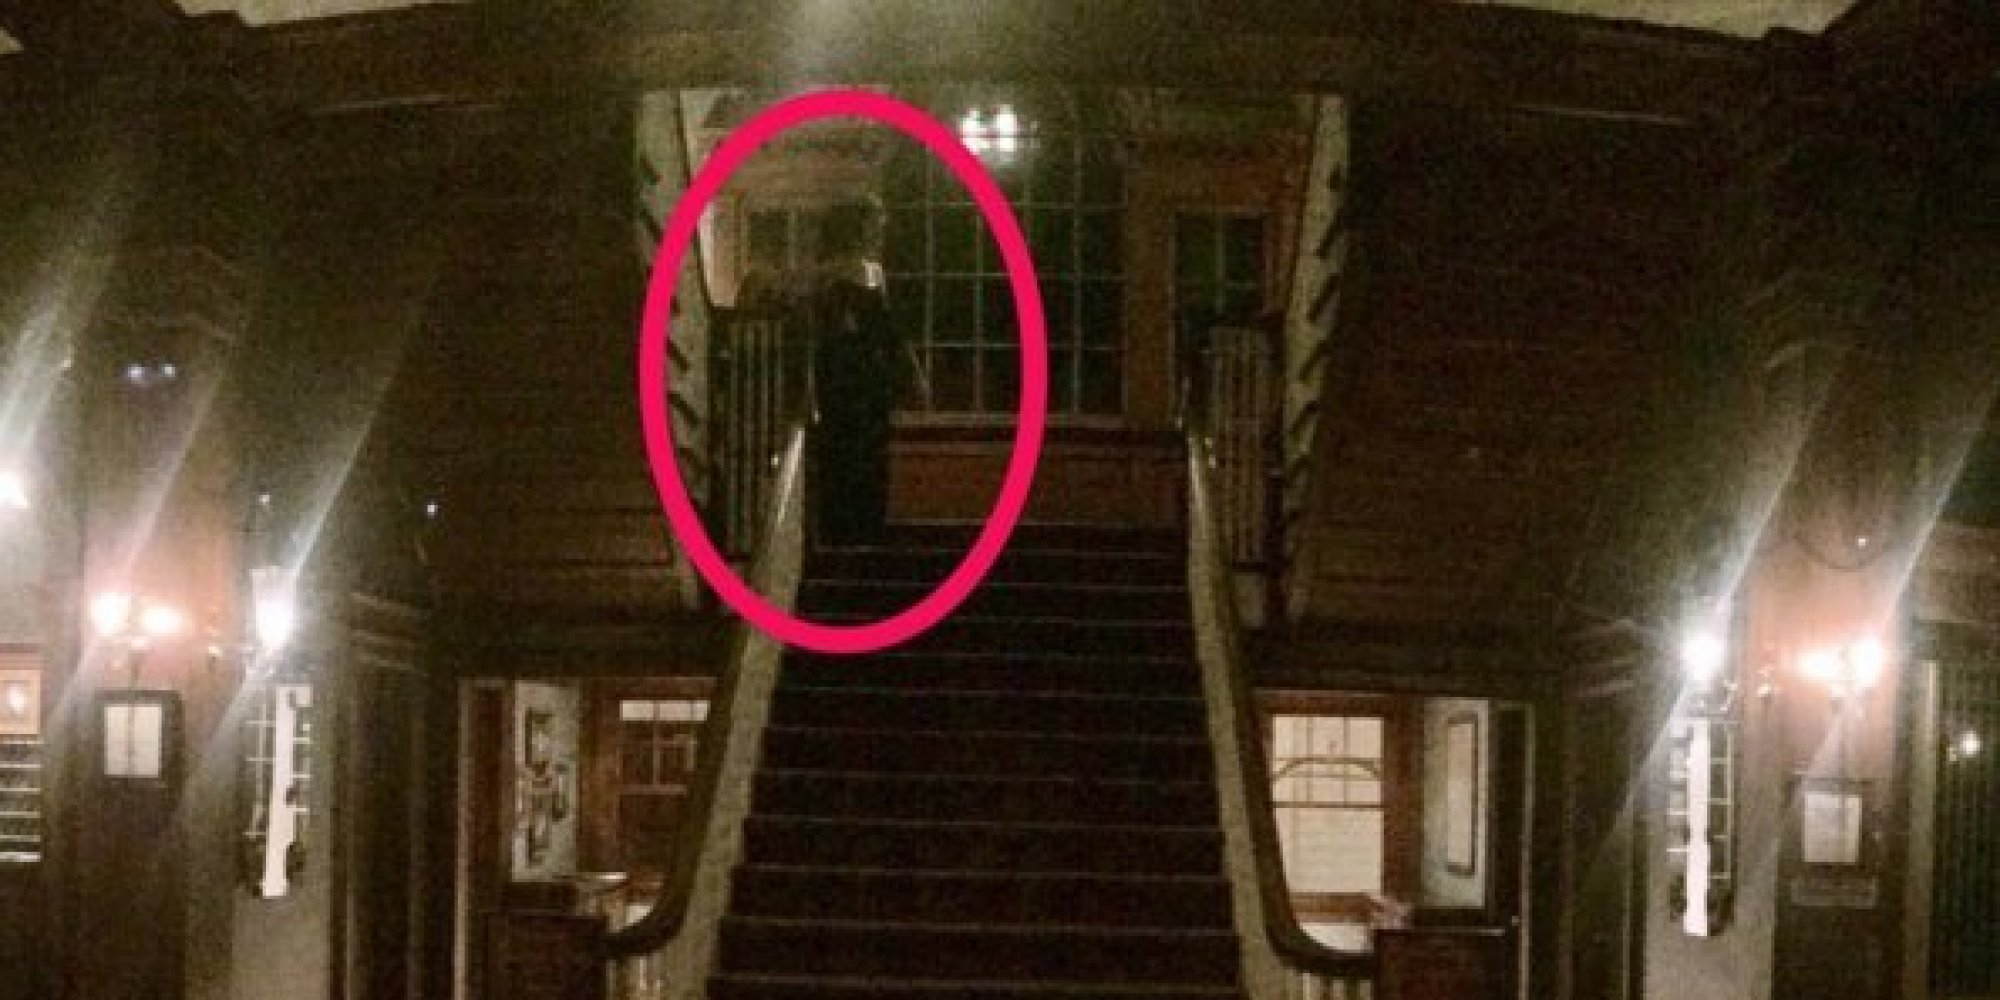 5 Of The Creepiest Photos Ever Captured At The Stanley ...